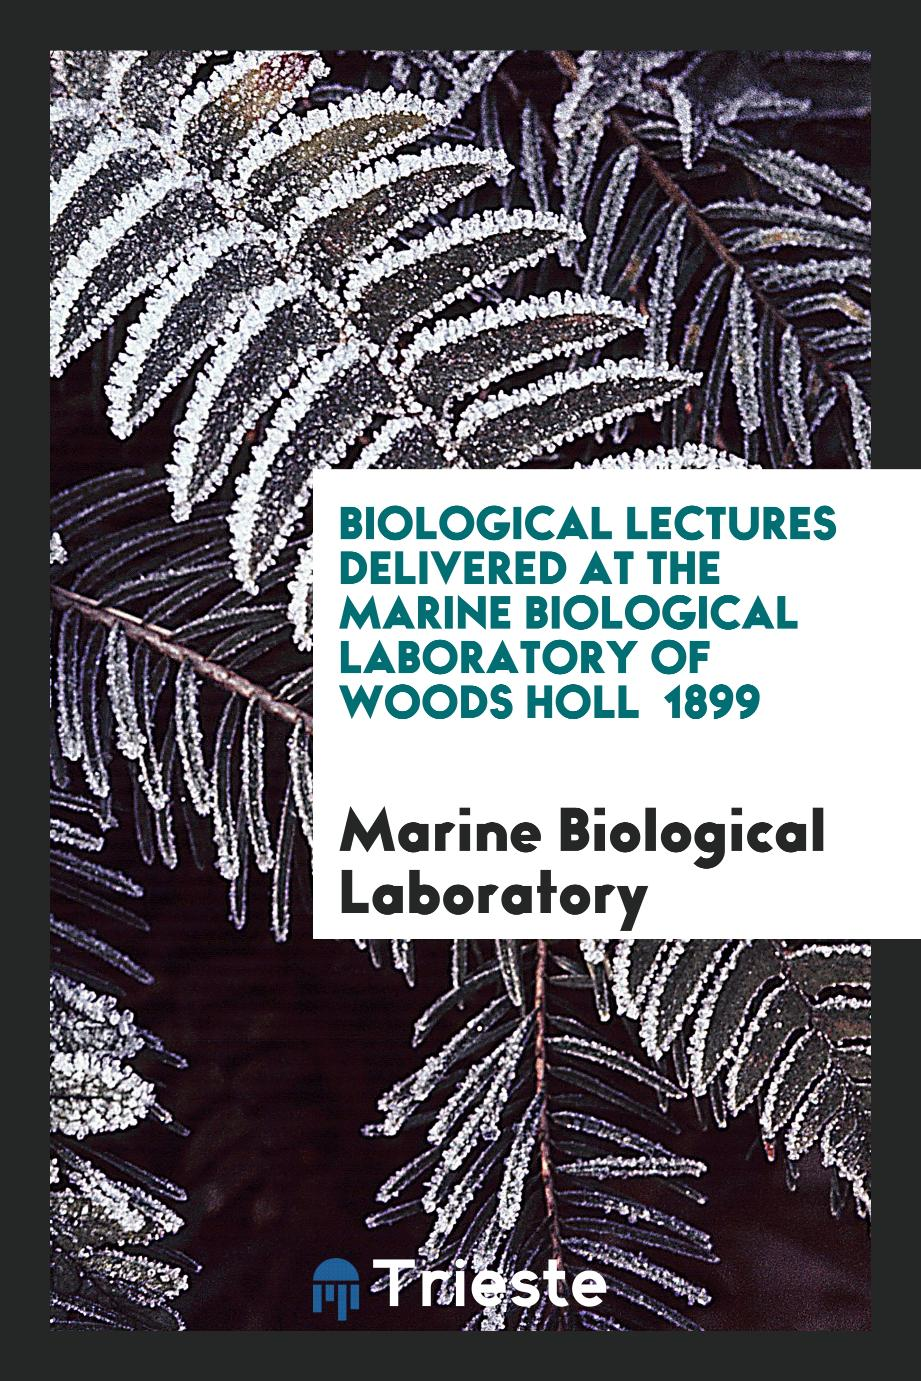 Biological Lectures Delivered at the Marine Biological Laboratory of Woods Holl 1899